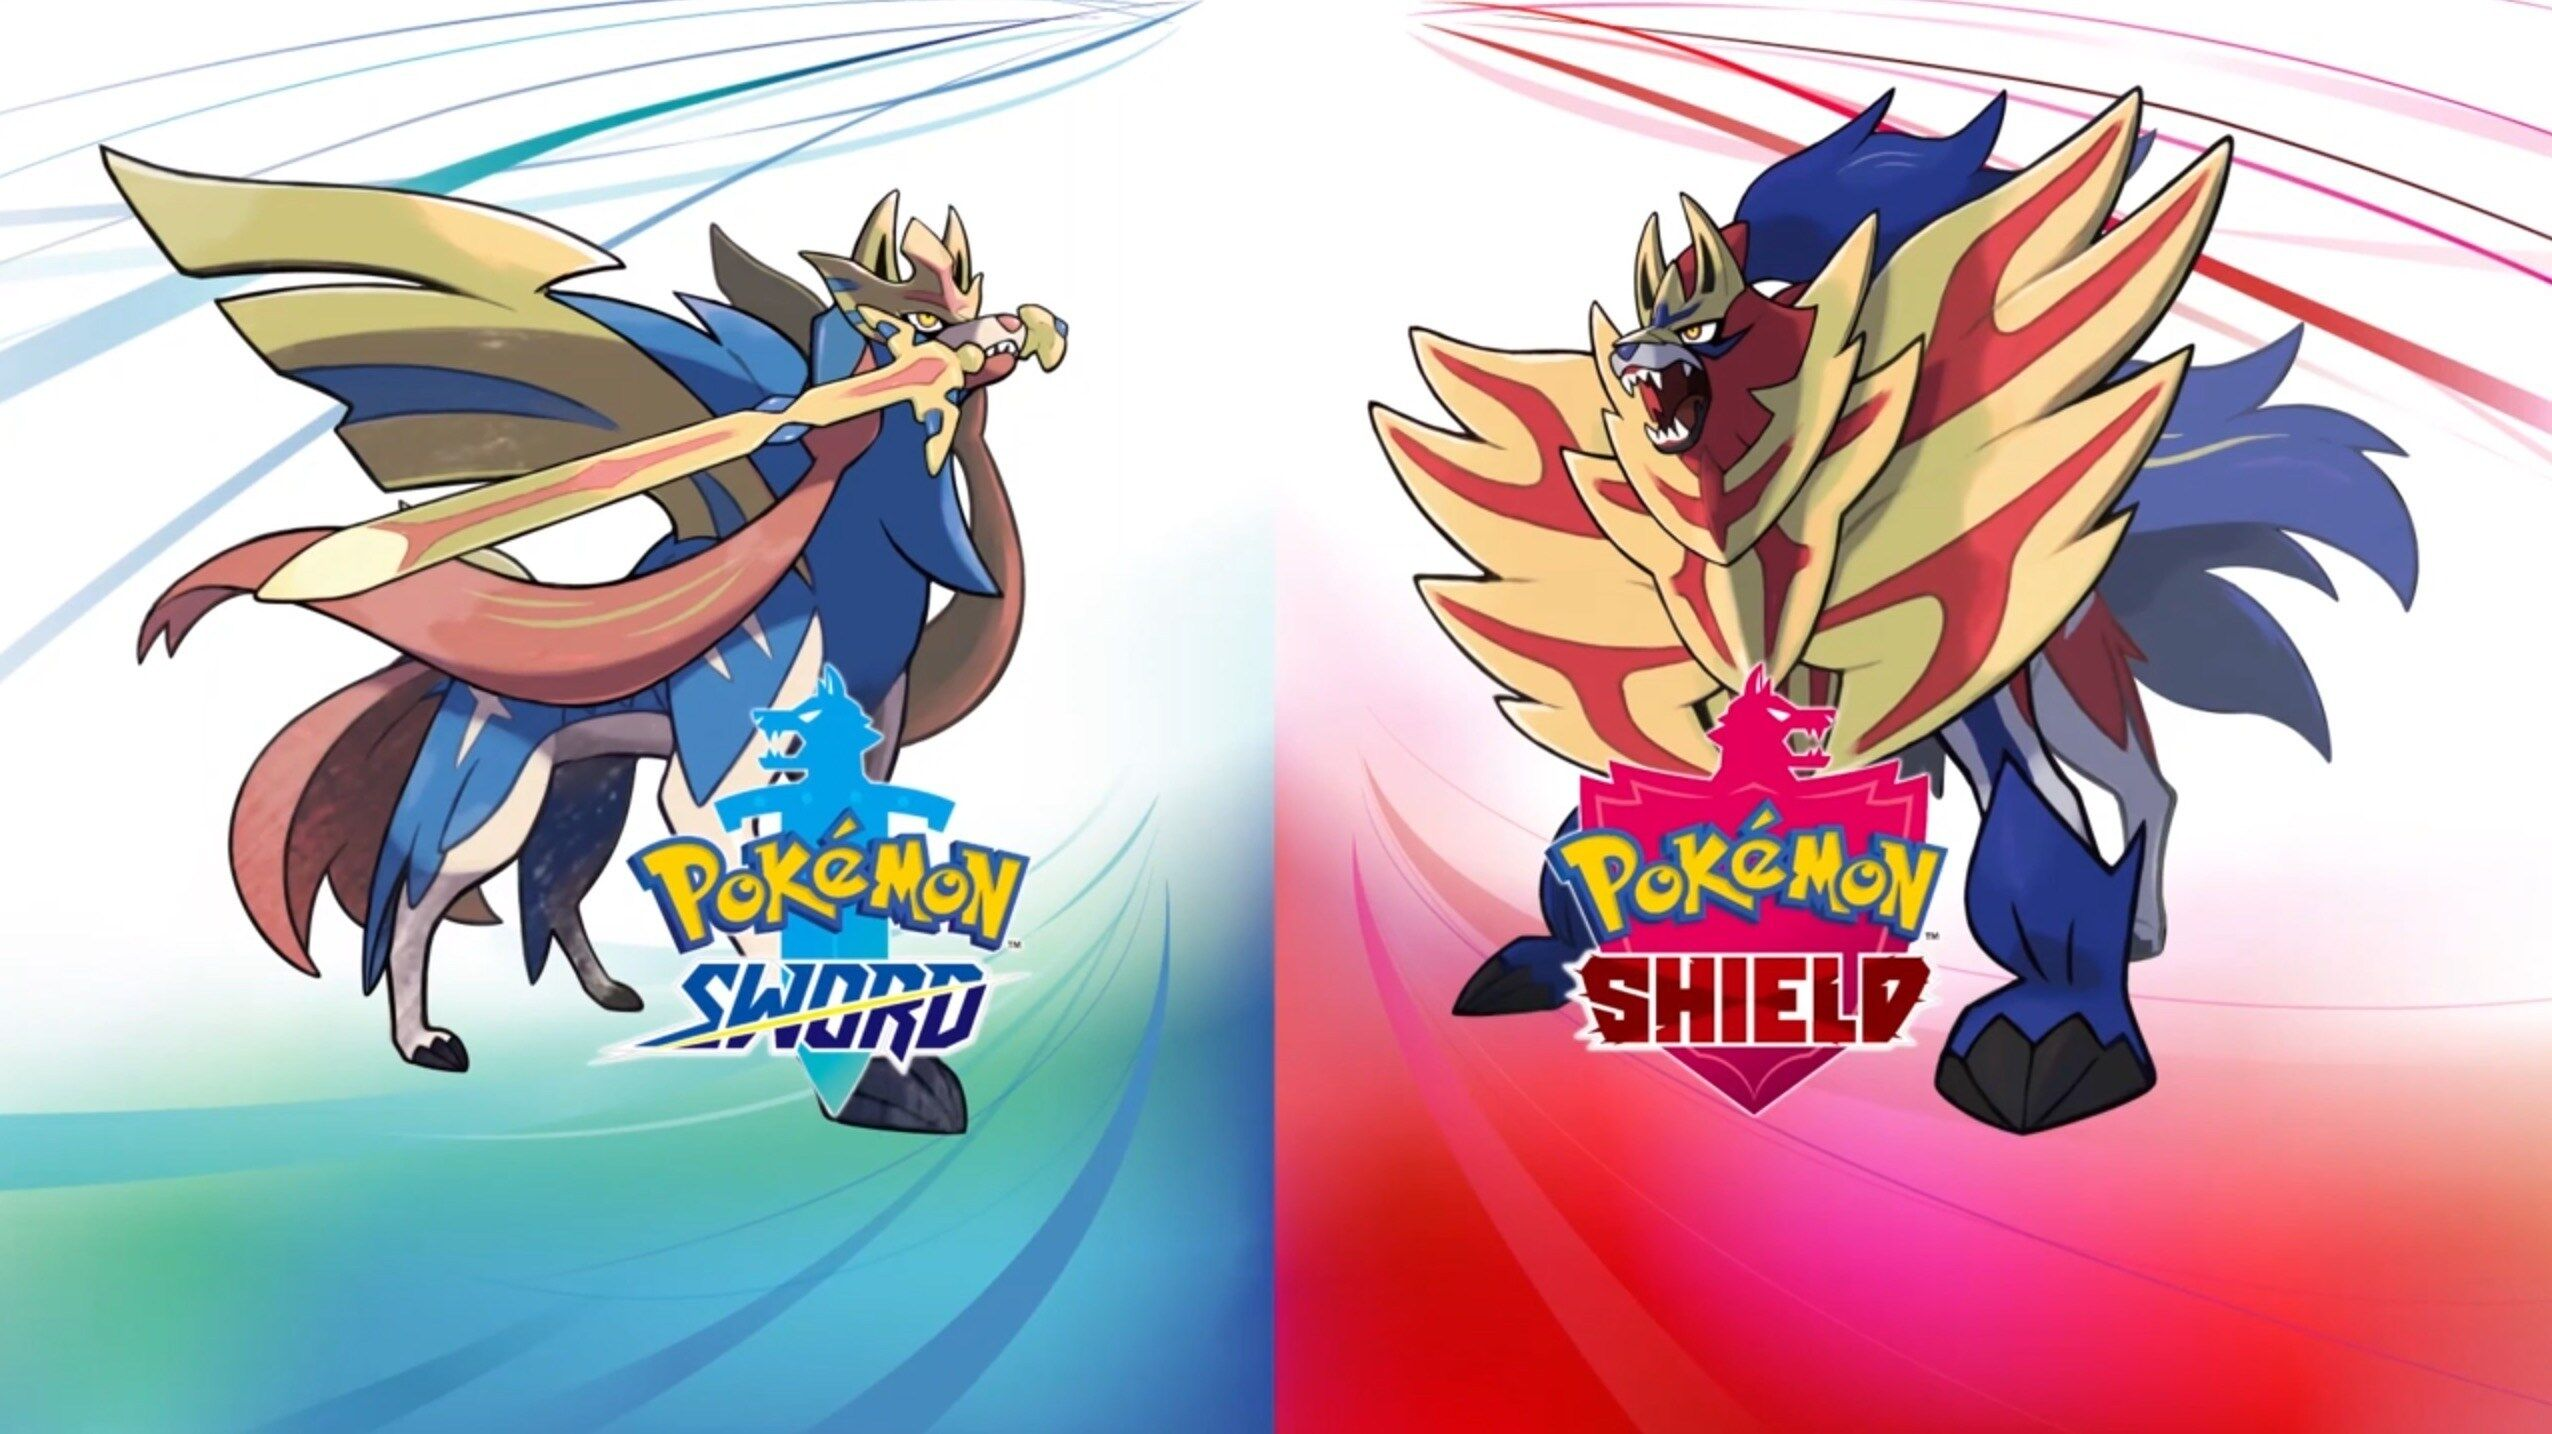 Pokemon Sword & Shield Artwork.jpg